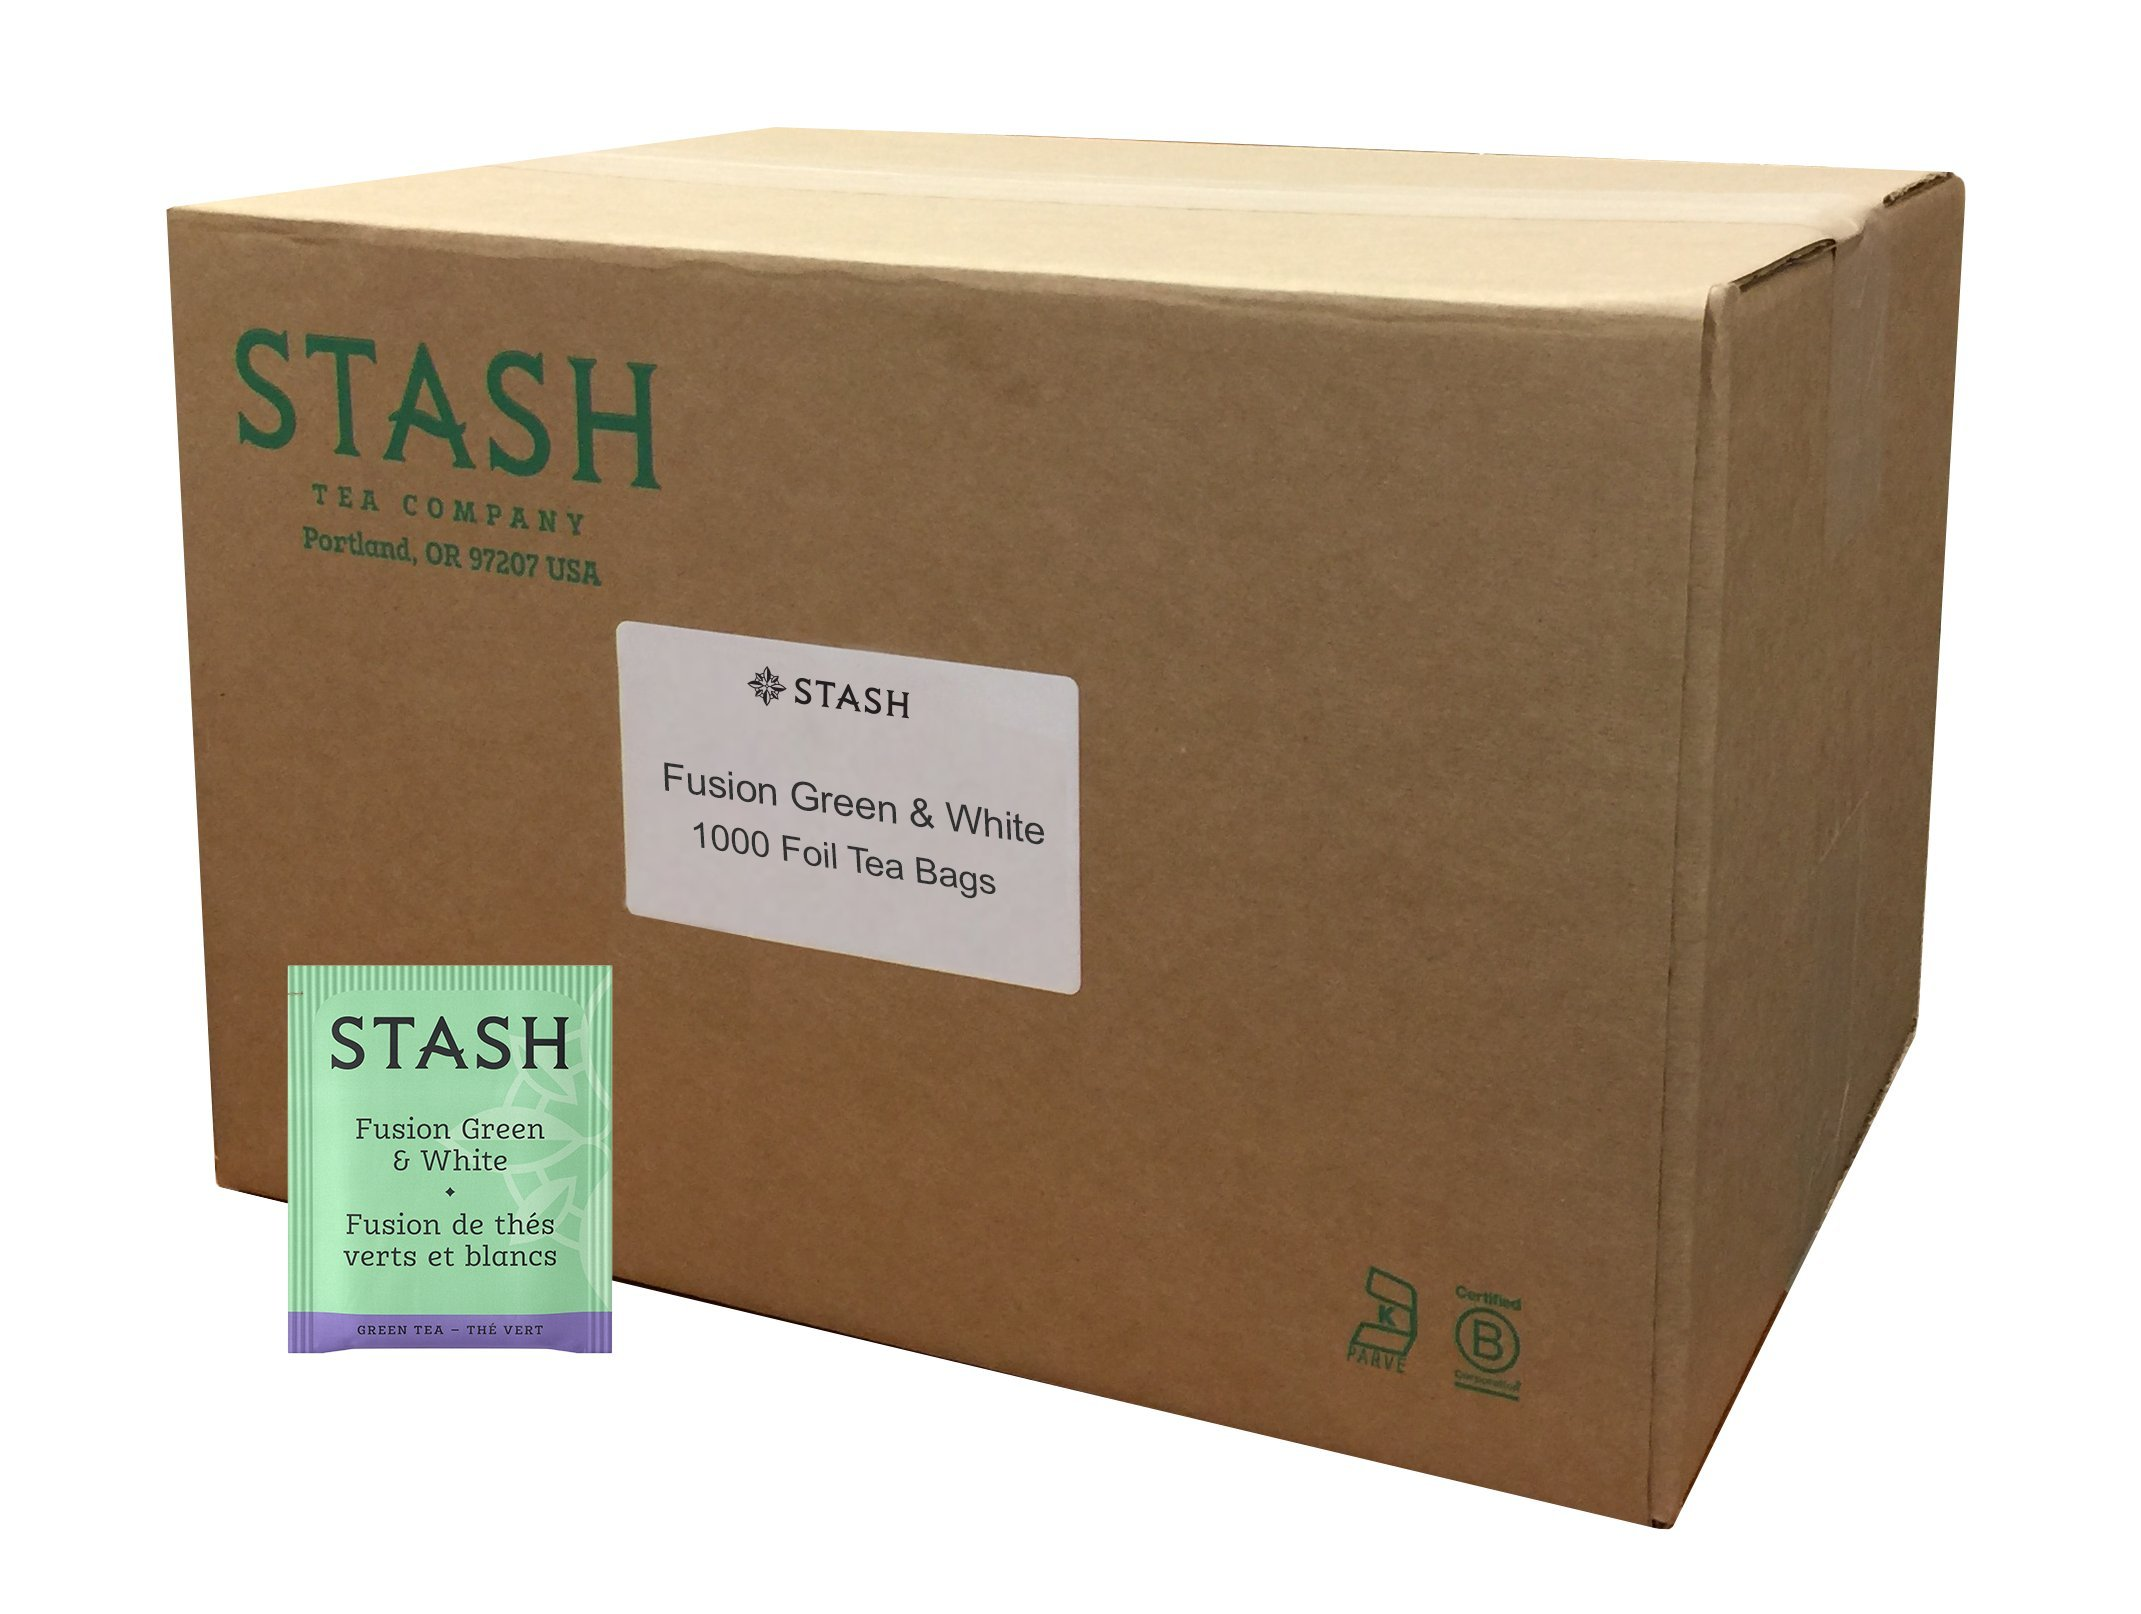 Stash Tea Fusion Green & White Tea 1000 Count Tea Bags in Foil (Packaging May Vary) Individual Tea Bags for Use in Teapots Mugs or Cups, White Tea and Green Tea, Brew Hot or Iced